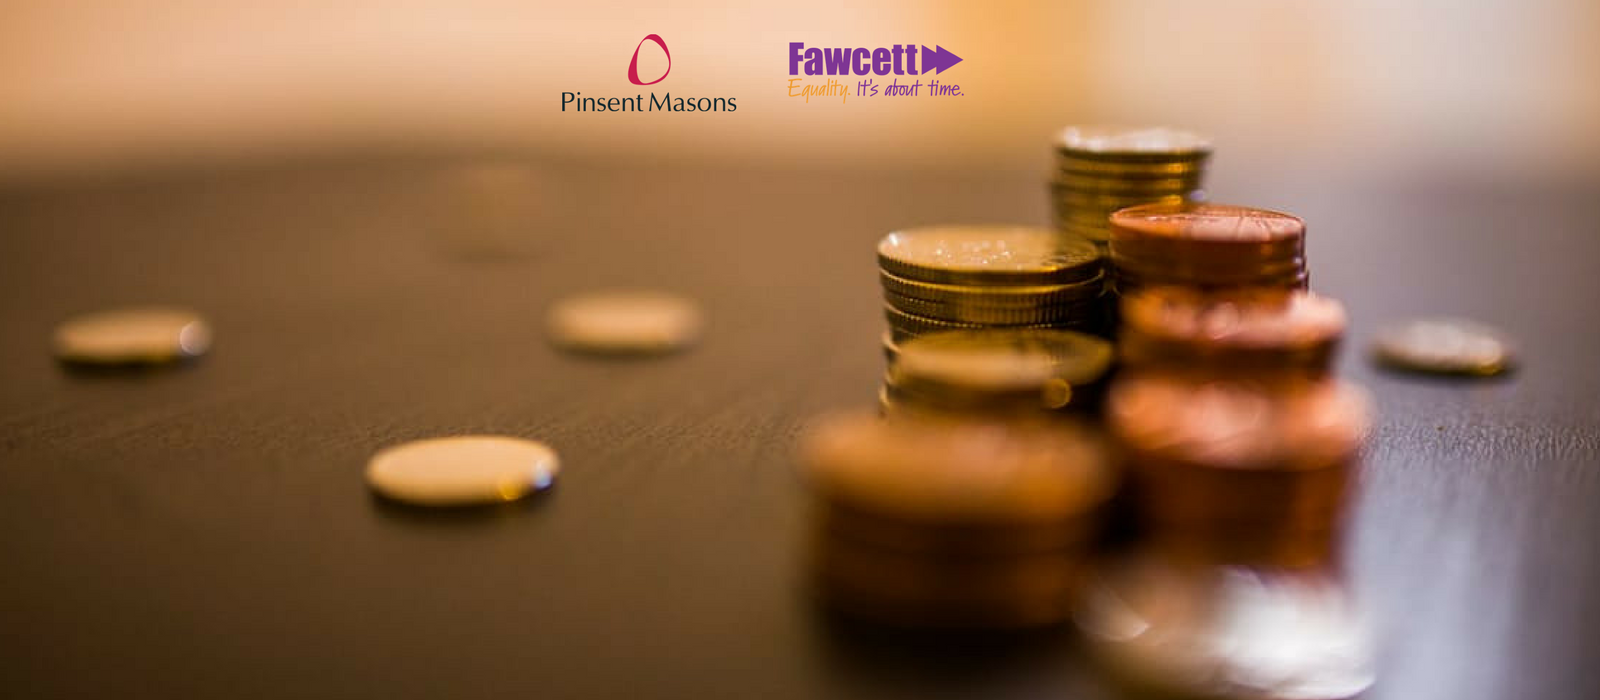 Fawcett urges financial institutions to make products 'work harder for women' in new report with Pinsent Masons